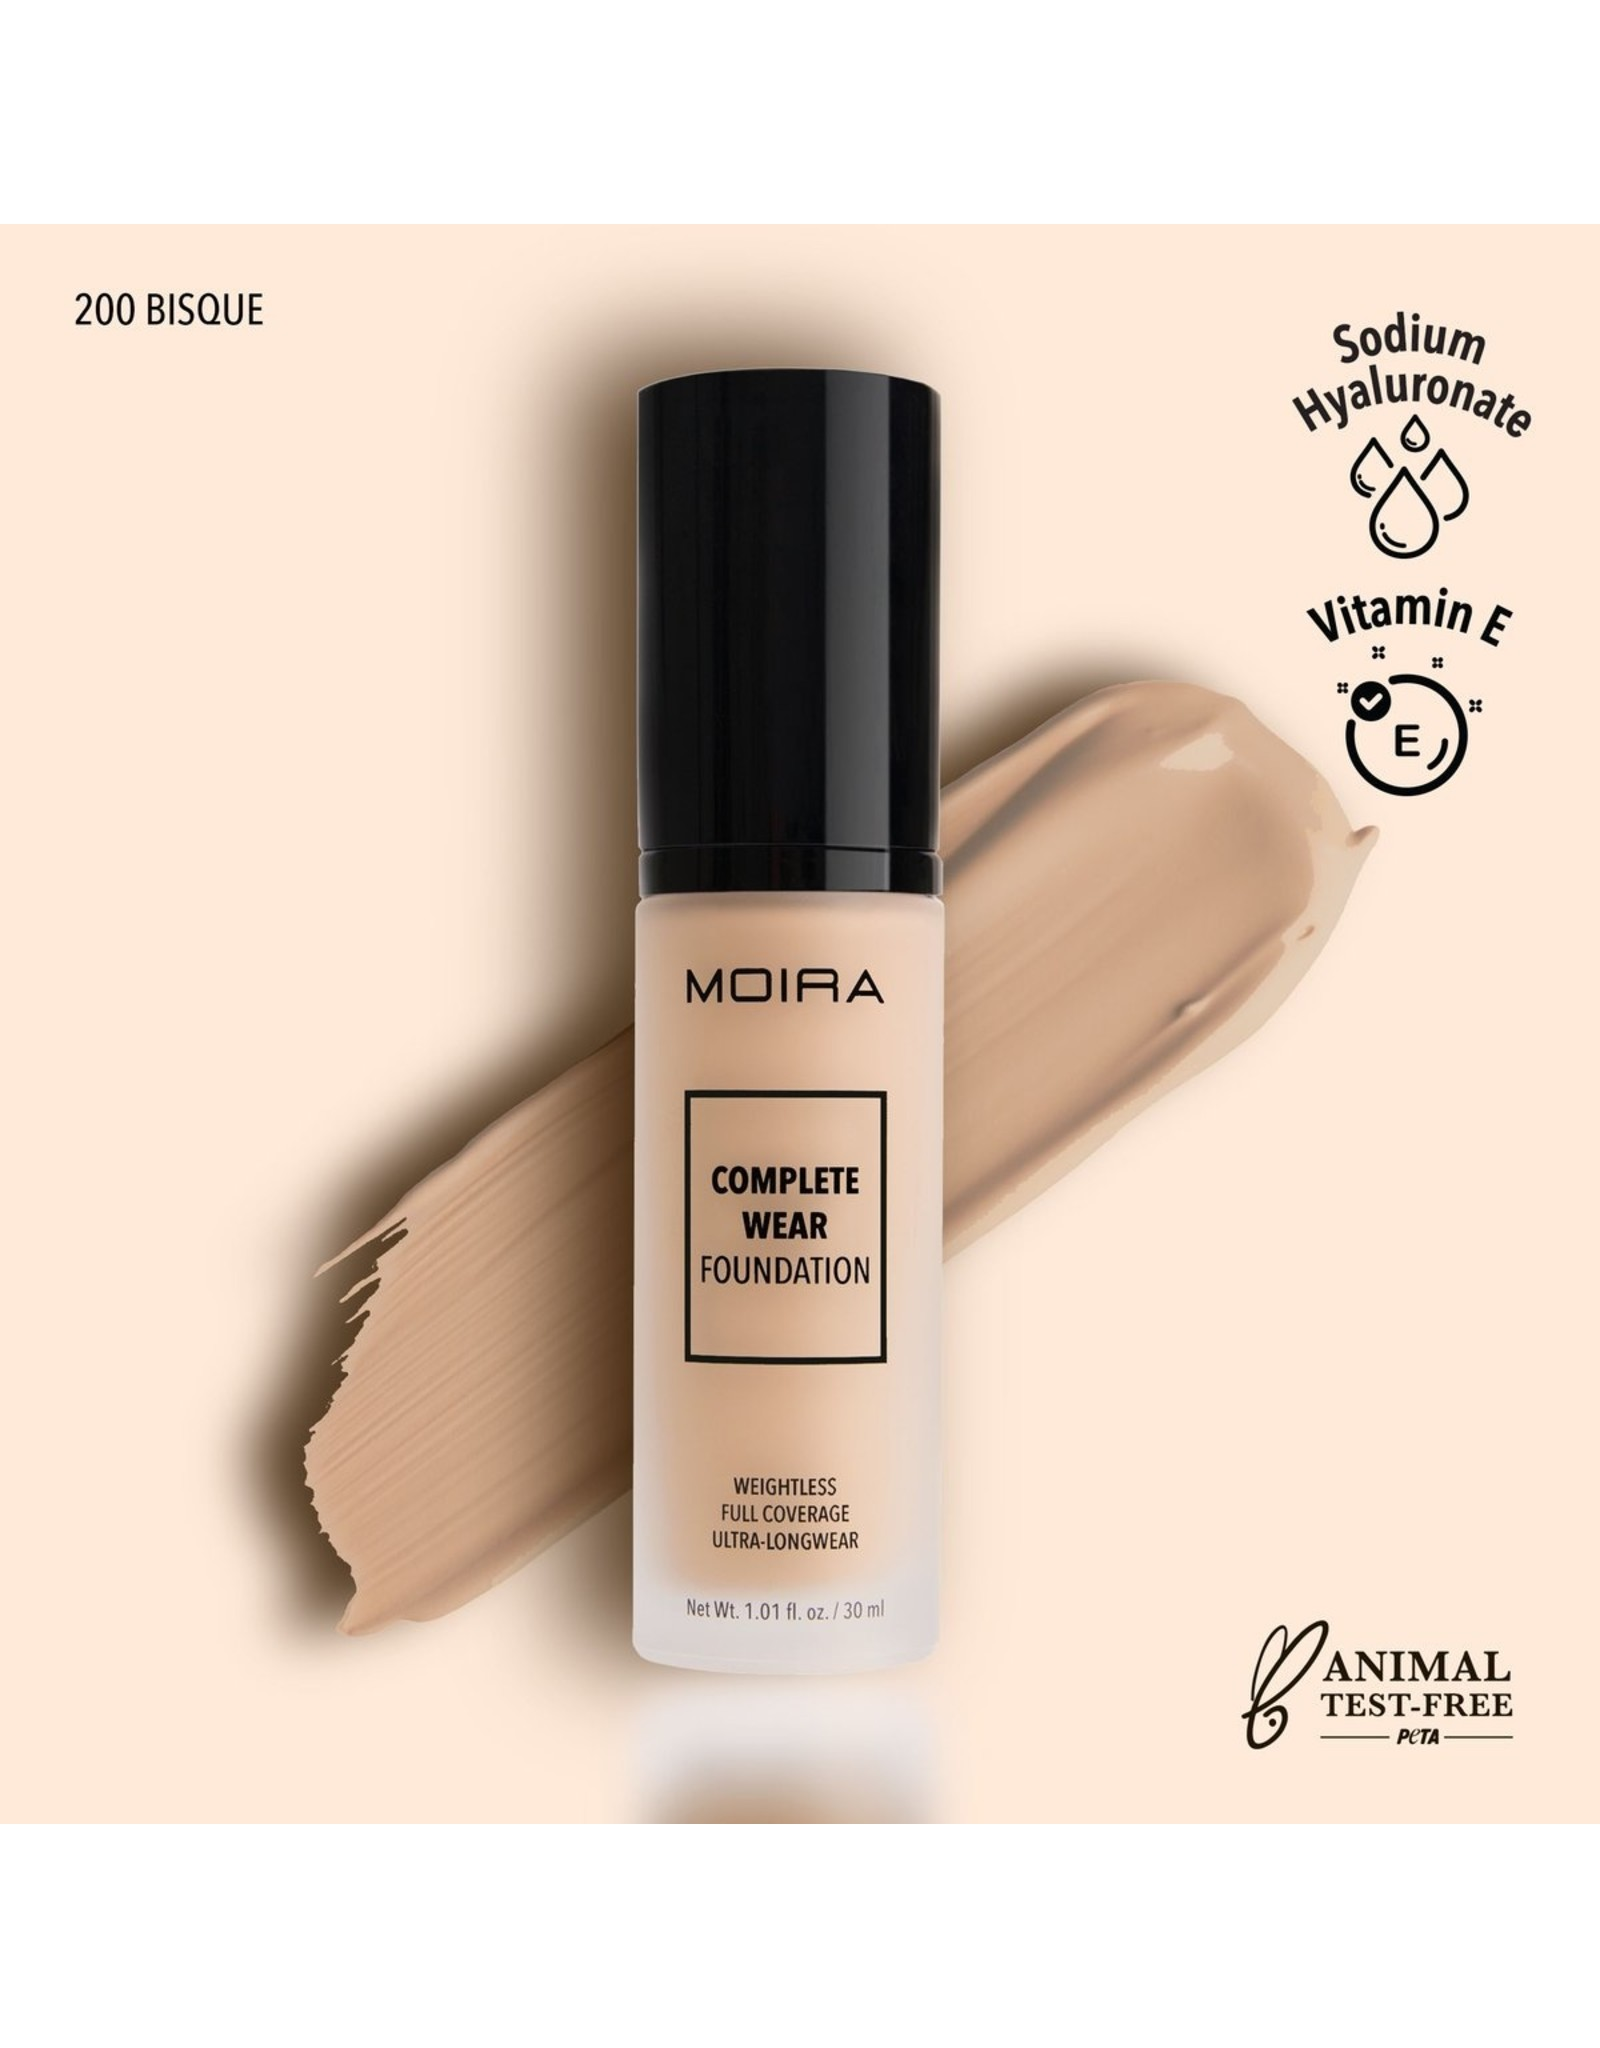 Moira Complete Wear Foundation 200 Bisque